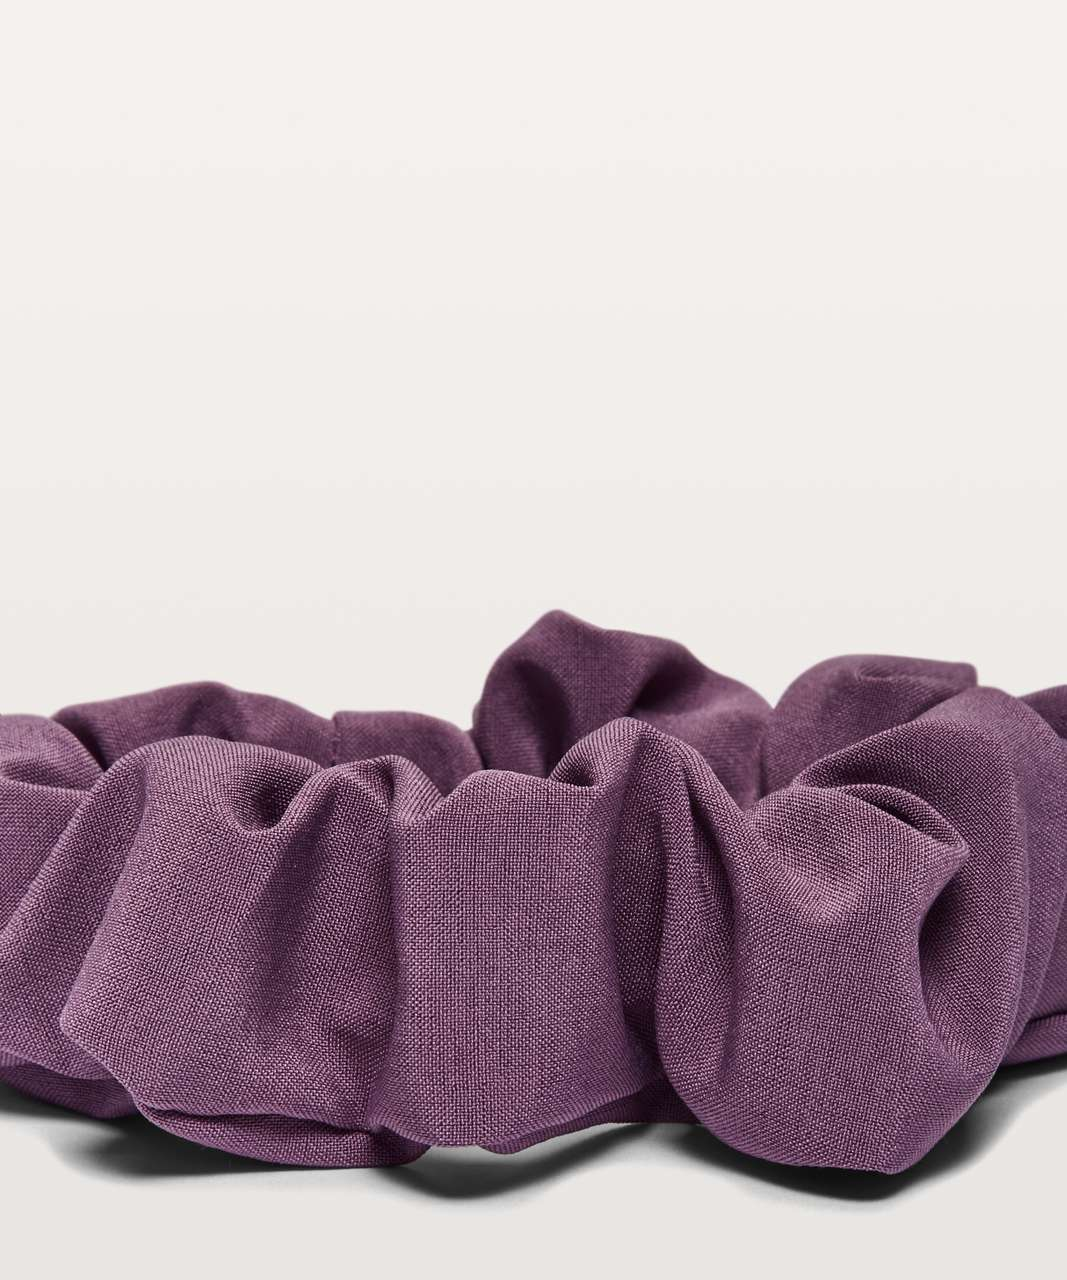 Lululemon Uplifting Scrunchie - Smoked Mulberry